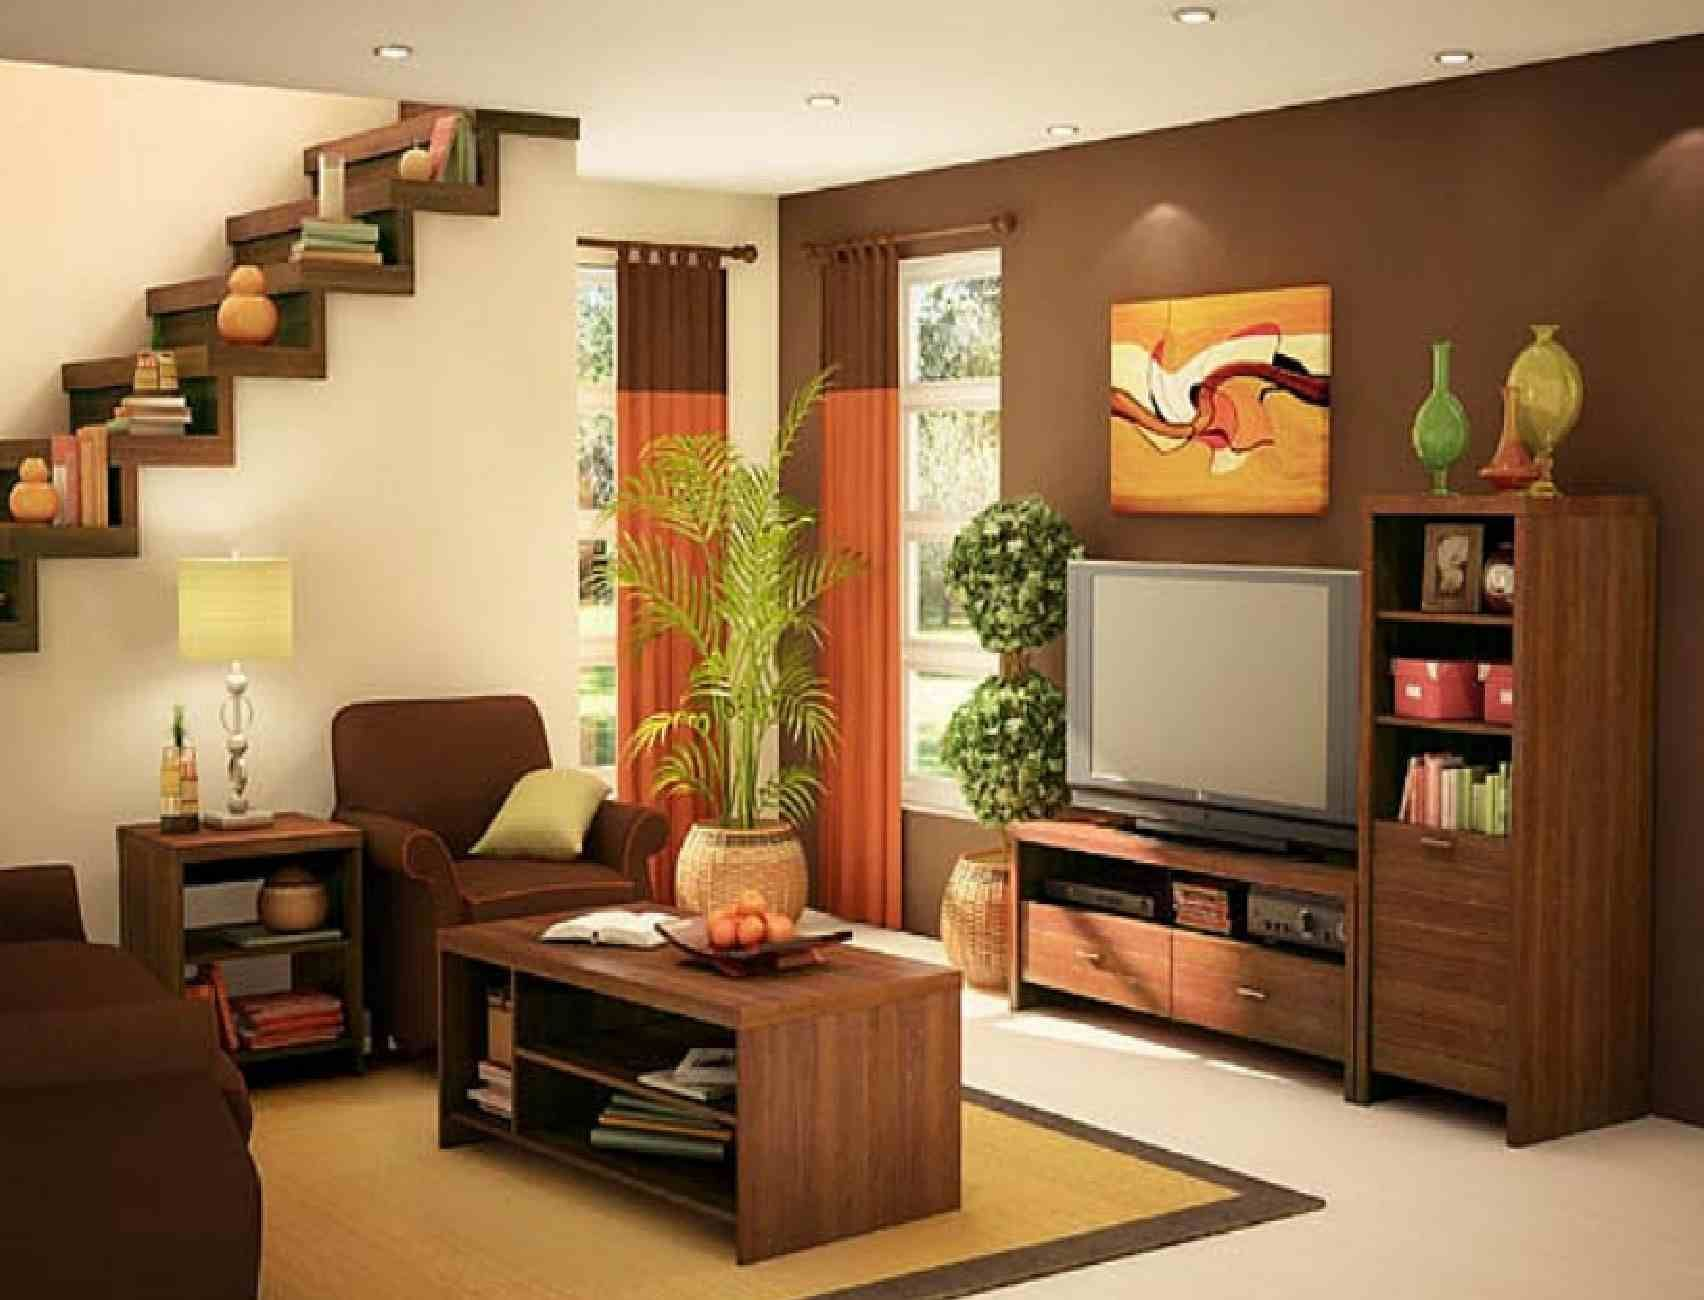 images of living rooms with tan walls living room images and interior decoration trends for 2014 attractive simple living room design ideas